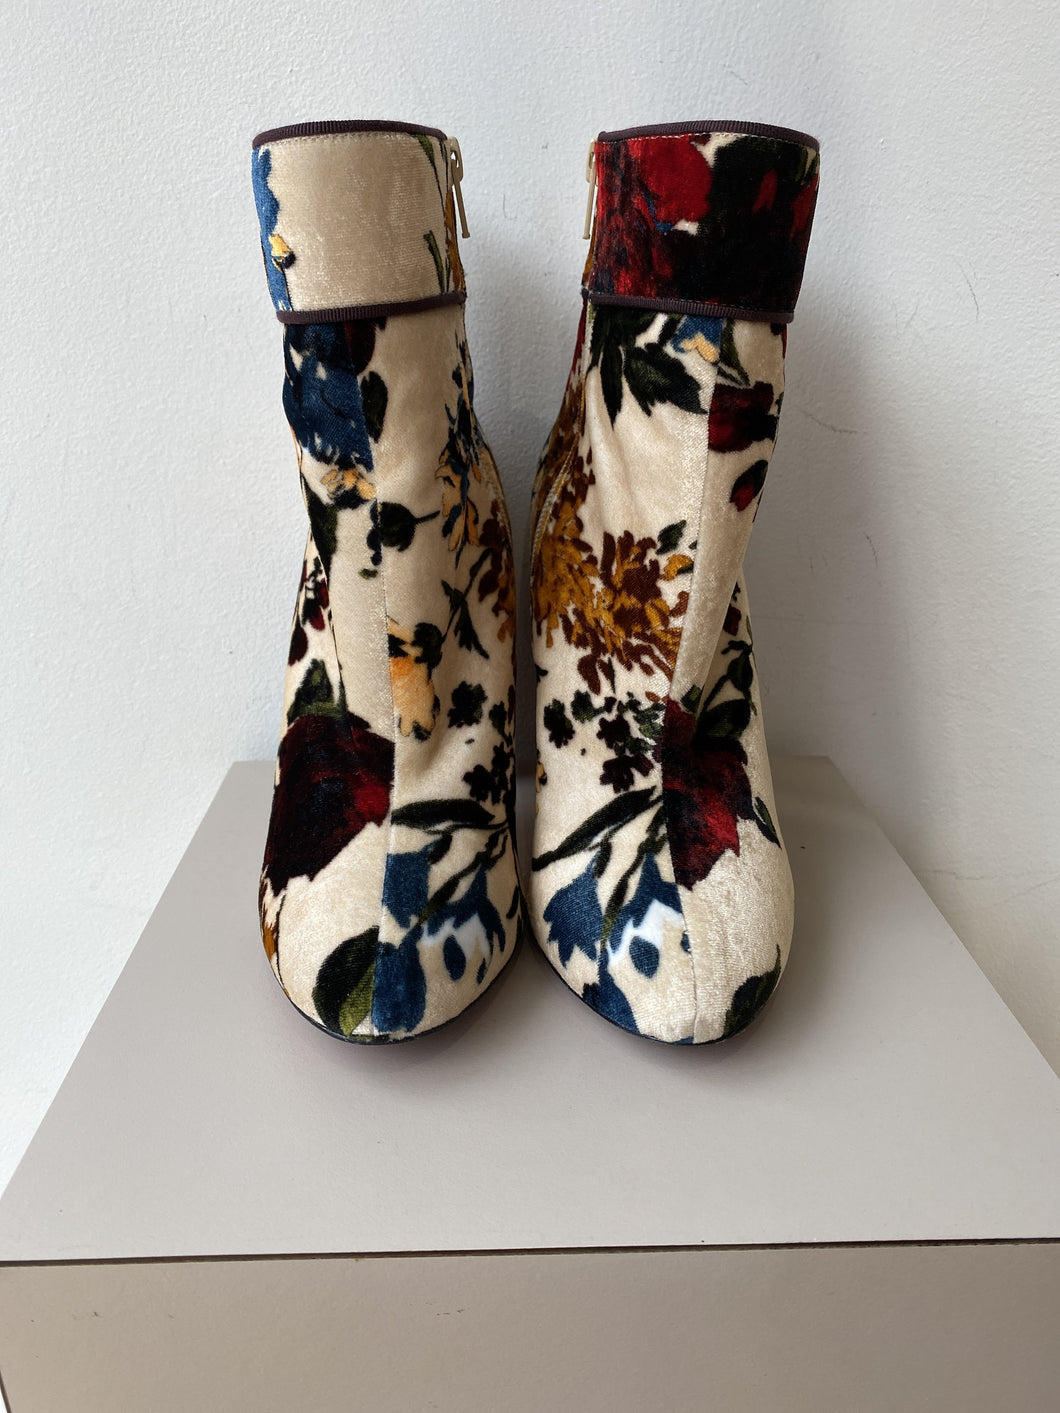 Christian Louboutin velour floral boots size 38.5 - My Girlfriend's Wardrobe York Pa